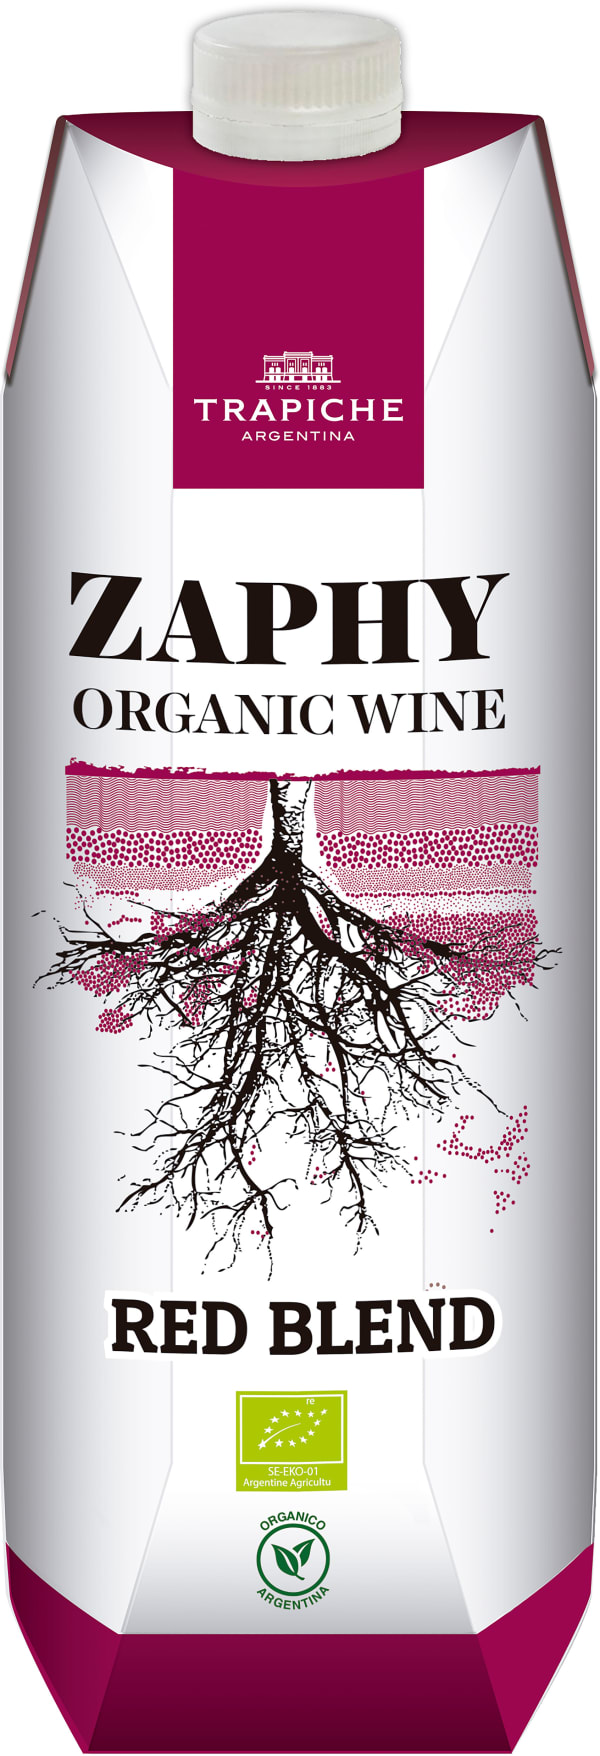 Trapiche Zaphy Organic Red Blend 2020 carton package